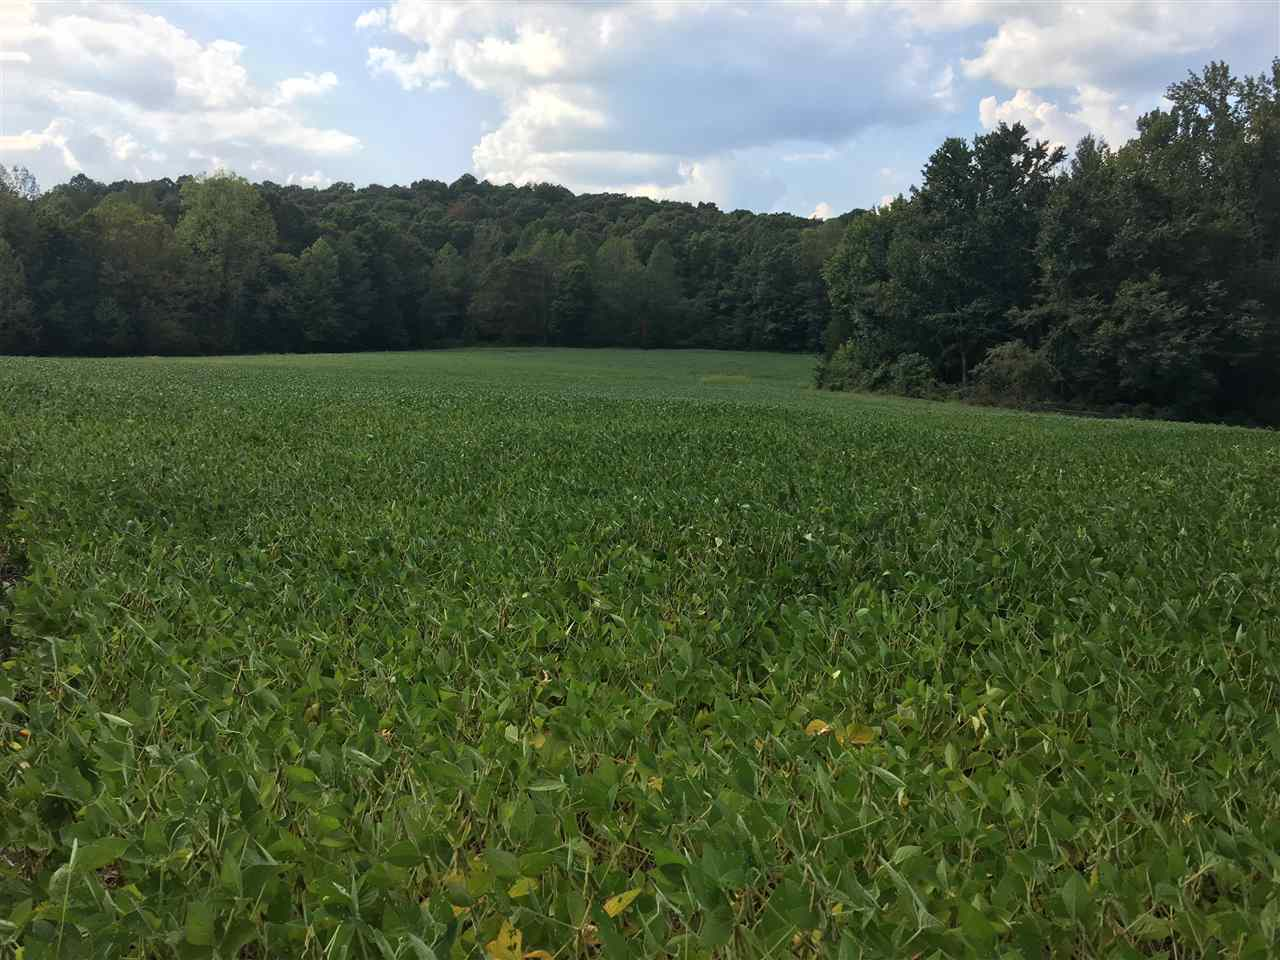 151.516 acres with beautiful building sites, lots of road frontage on two roads, crop land, diversified wooded land loaded with quality deer and turkey hunting. The woods are mostly hardwoods and have the perfect terrain and configuration for great hunting. If you are looking for an investment with all the right ingredients plus only minutes to Bowling Green and the Natcher Parkway, this is it.